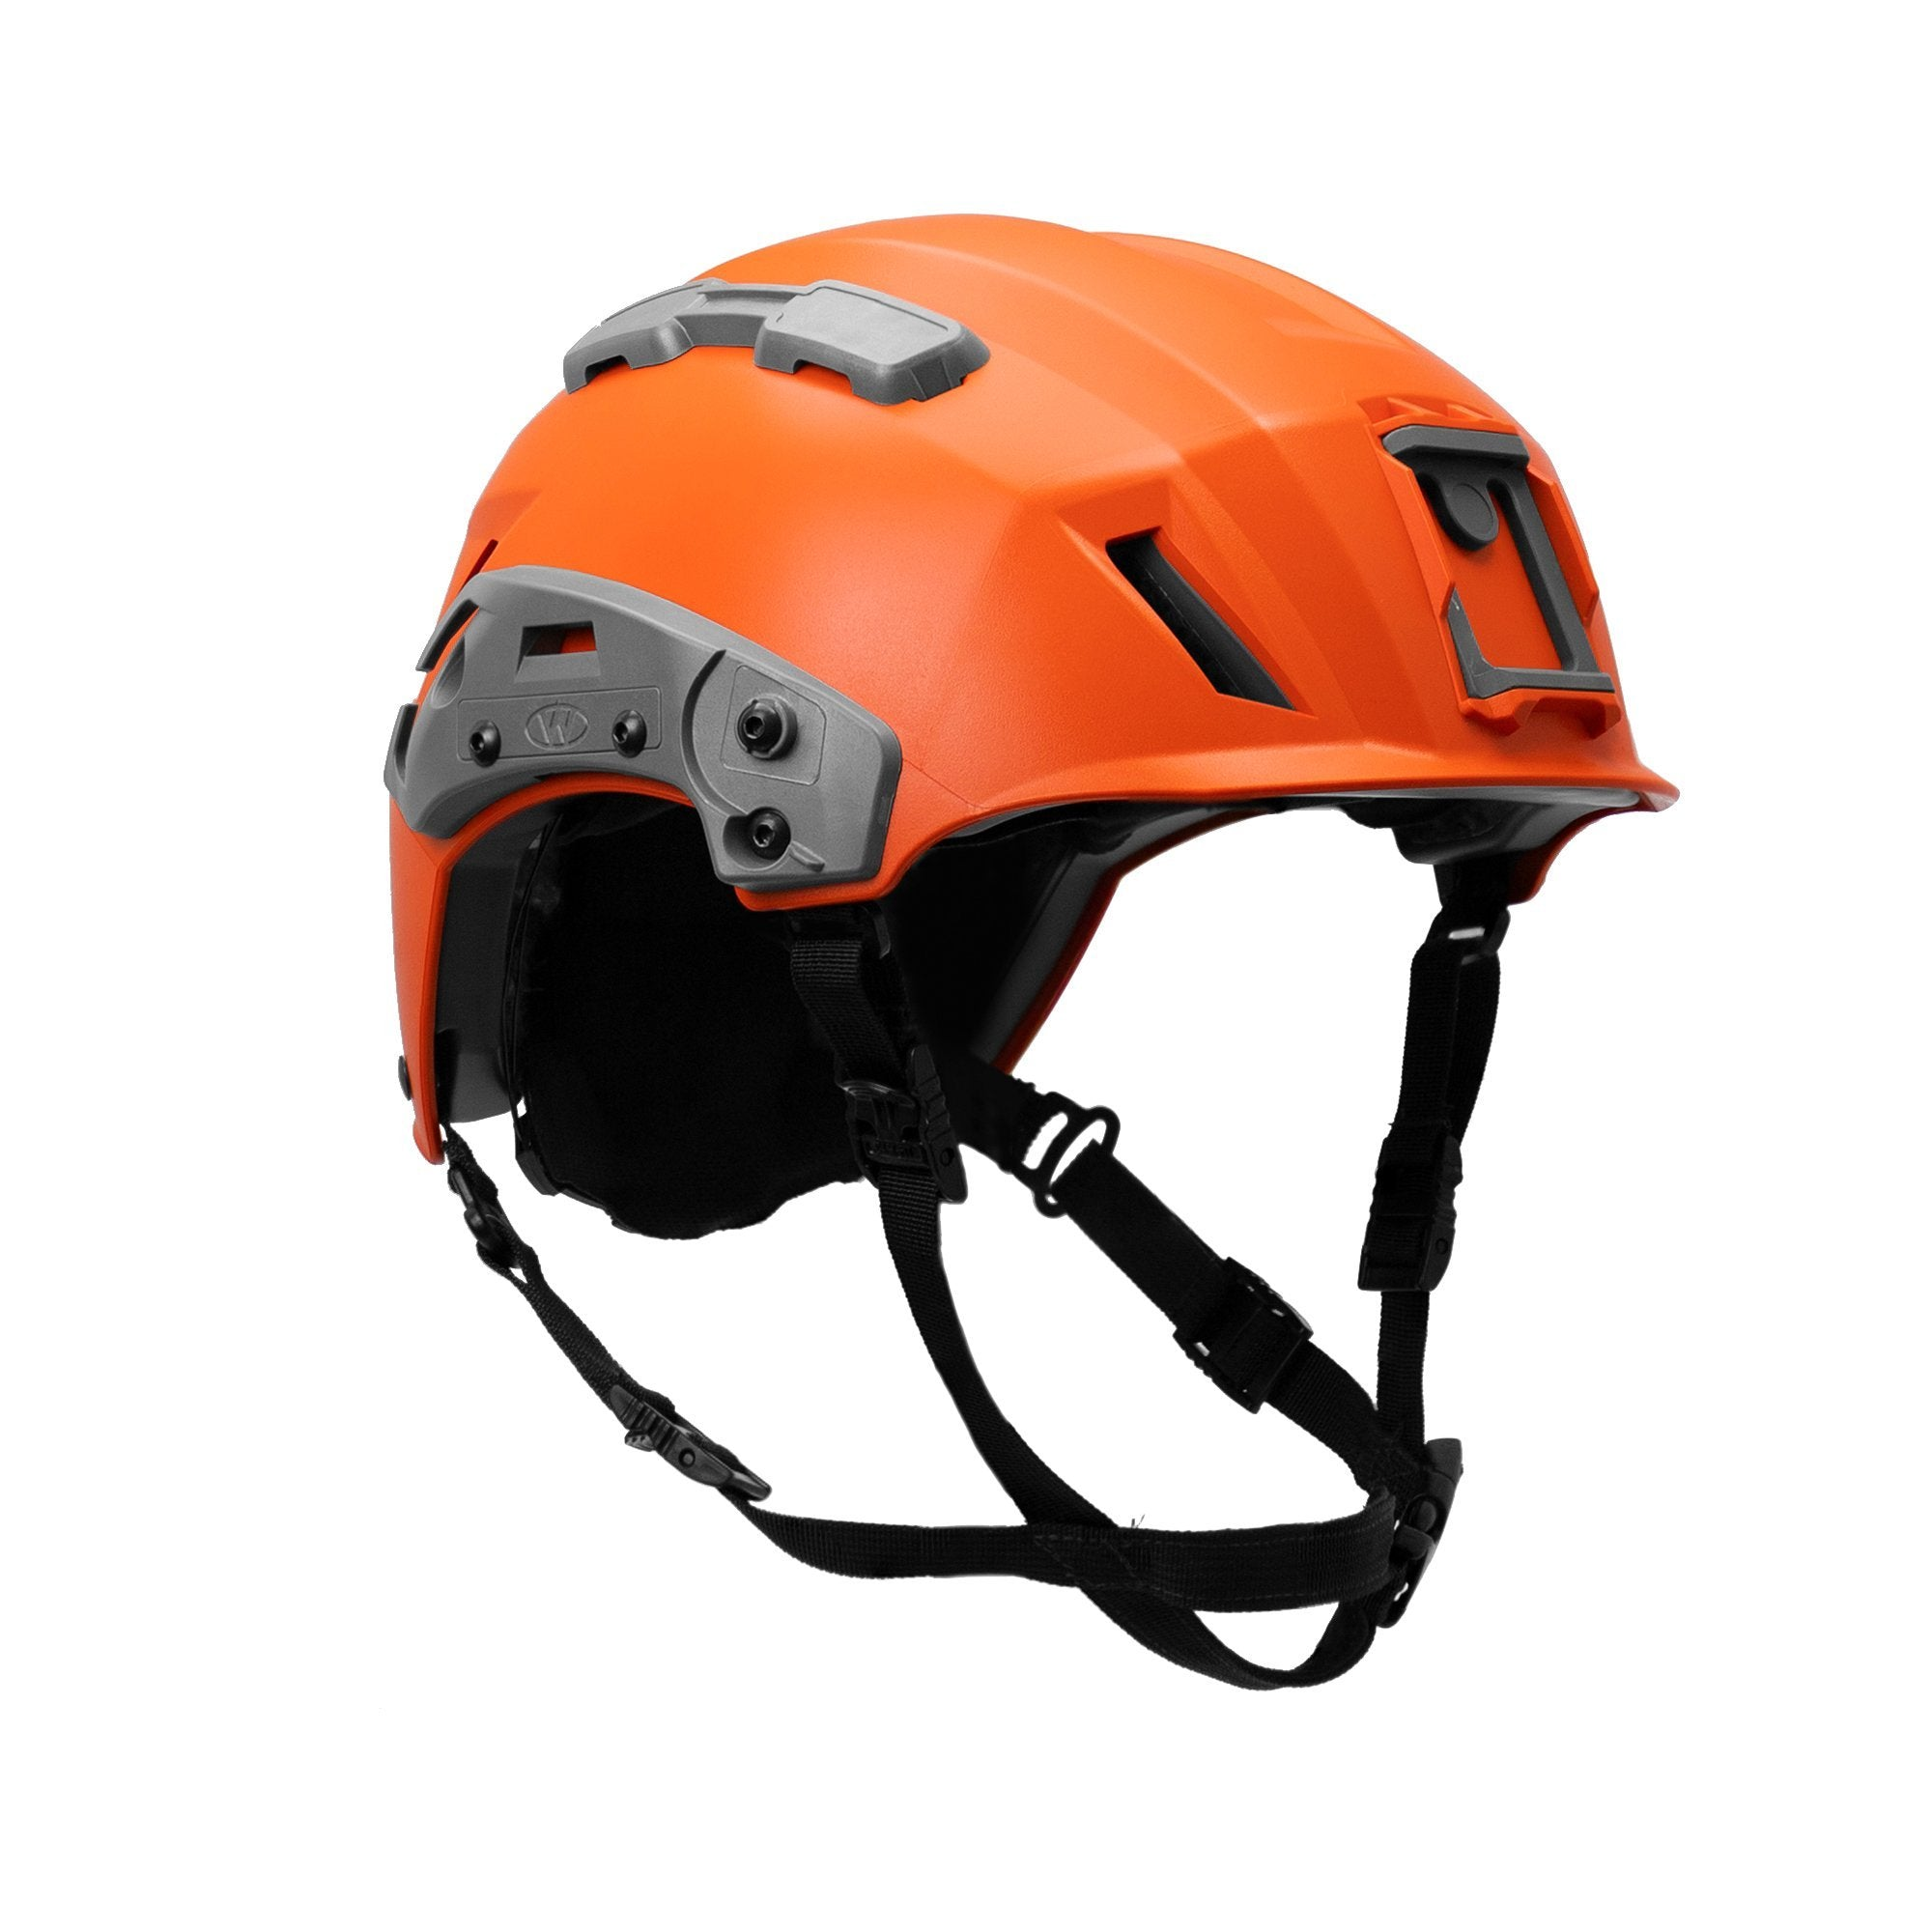 Team Wendy Helm EXFIL® SAR Tactical Orange